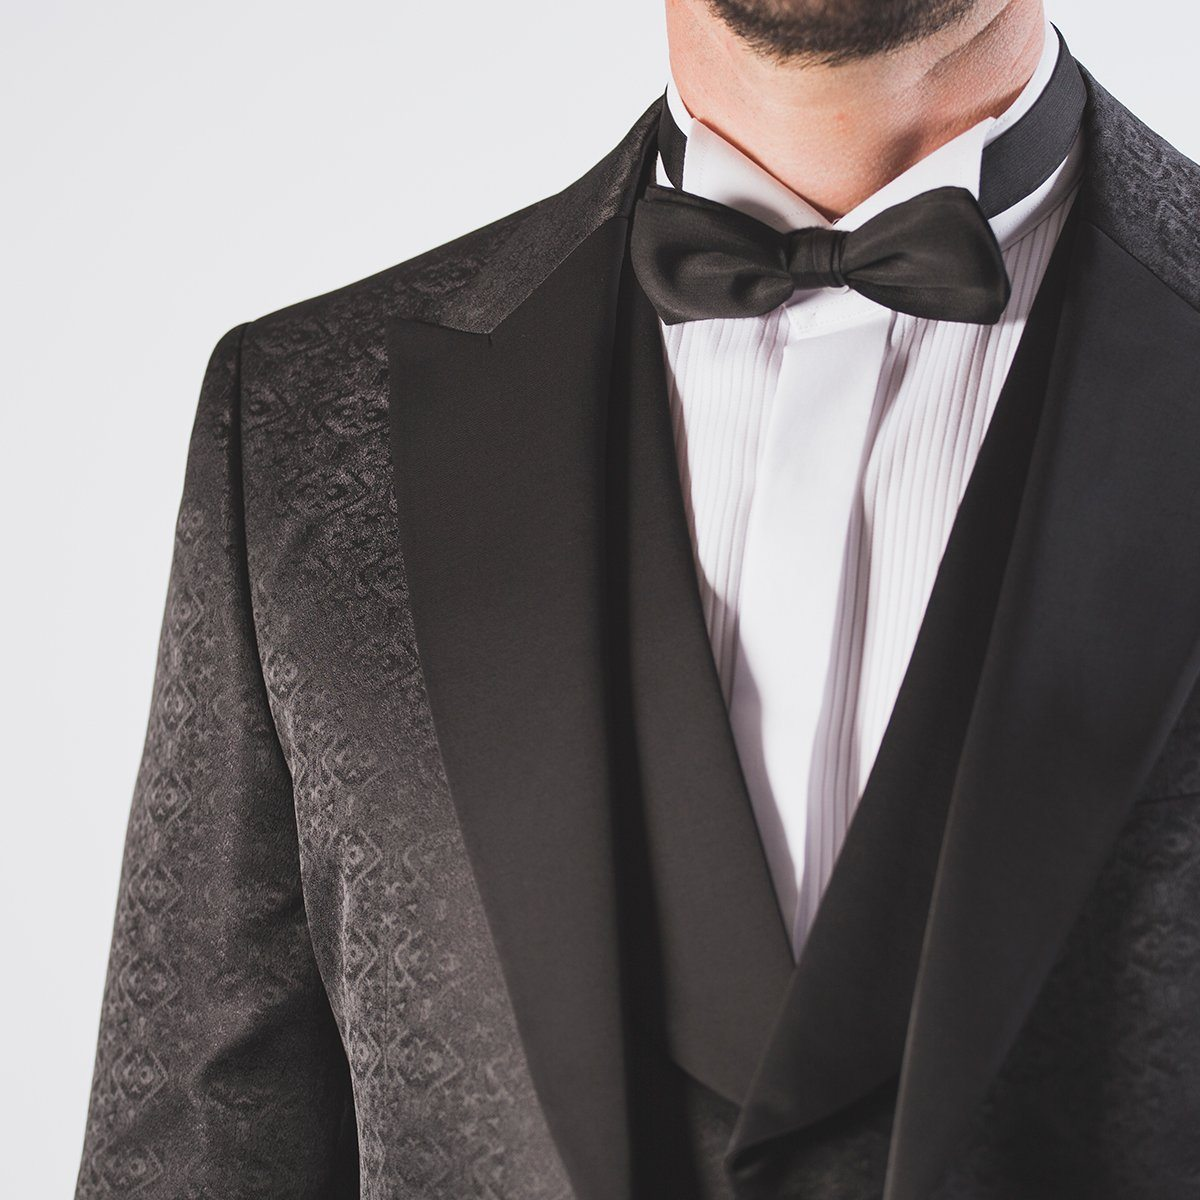 James Black Tuxedo Suit